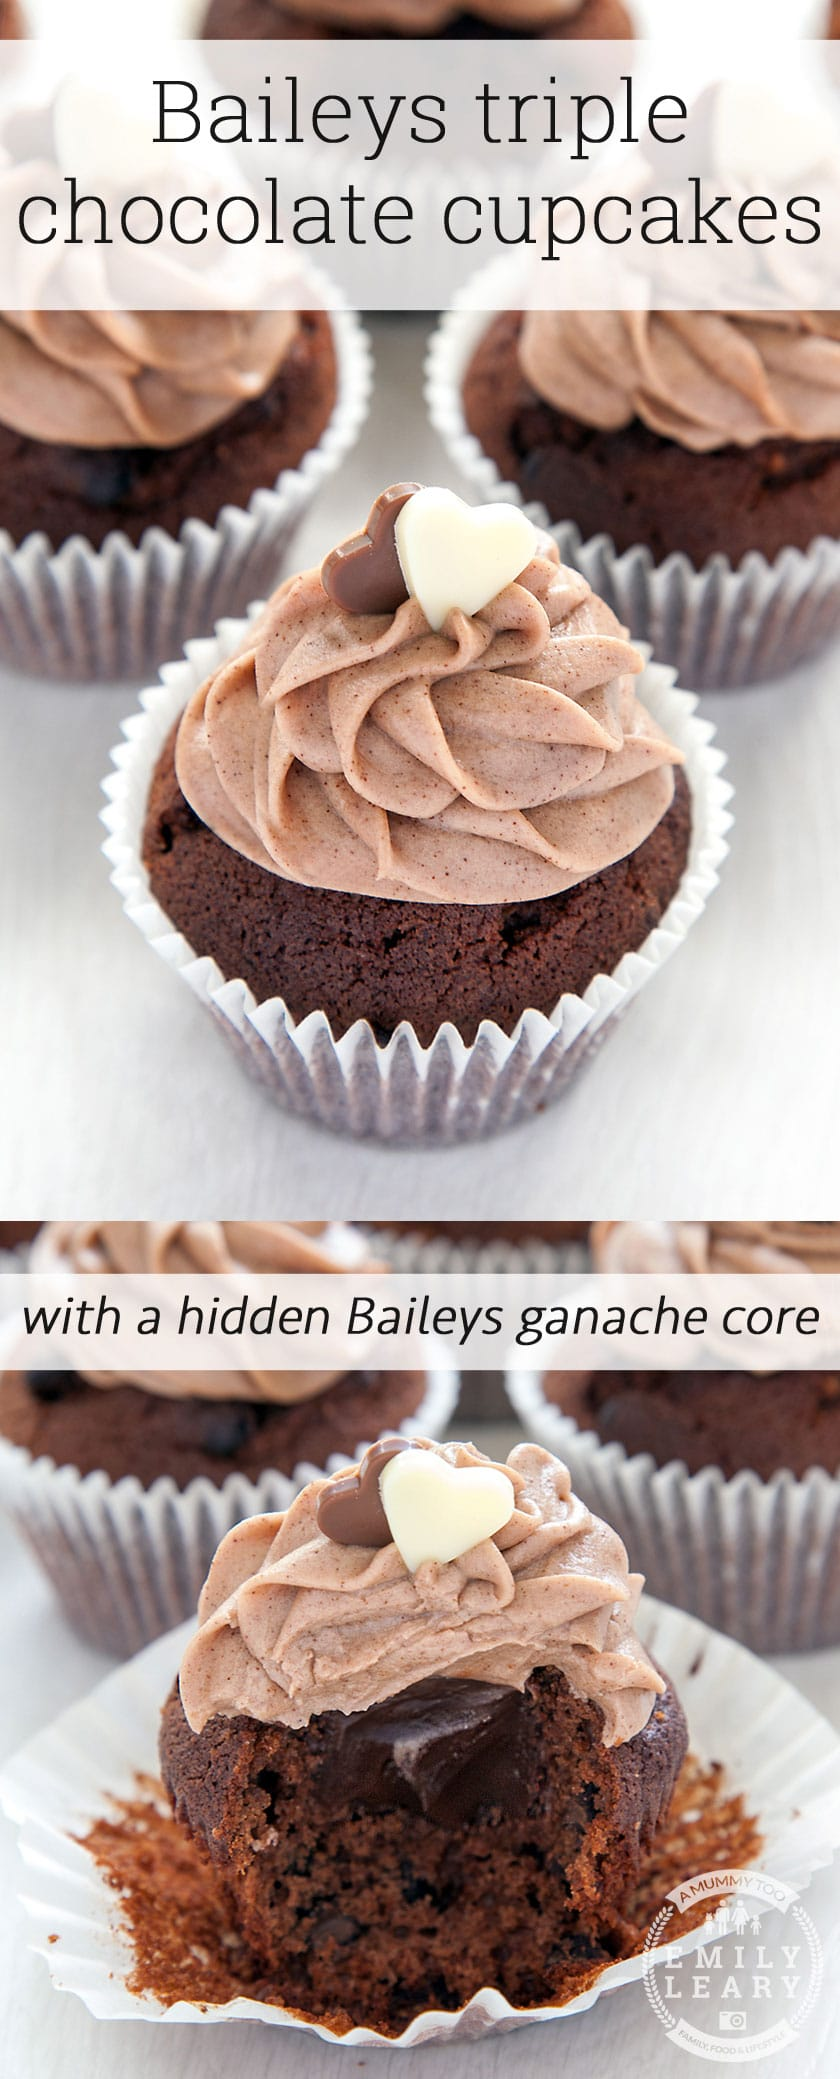 Ultimate Baileys chocolate cupcakes with a surprise inside. Ready to make the ultimate chocolate cupcakes? Here's how